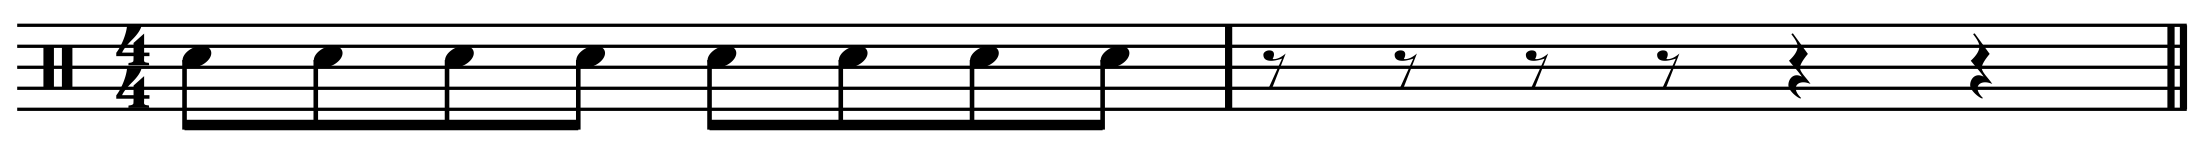 Note Lengths